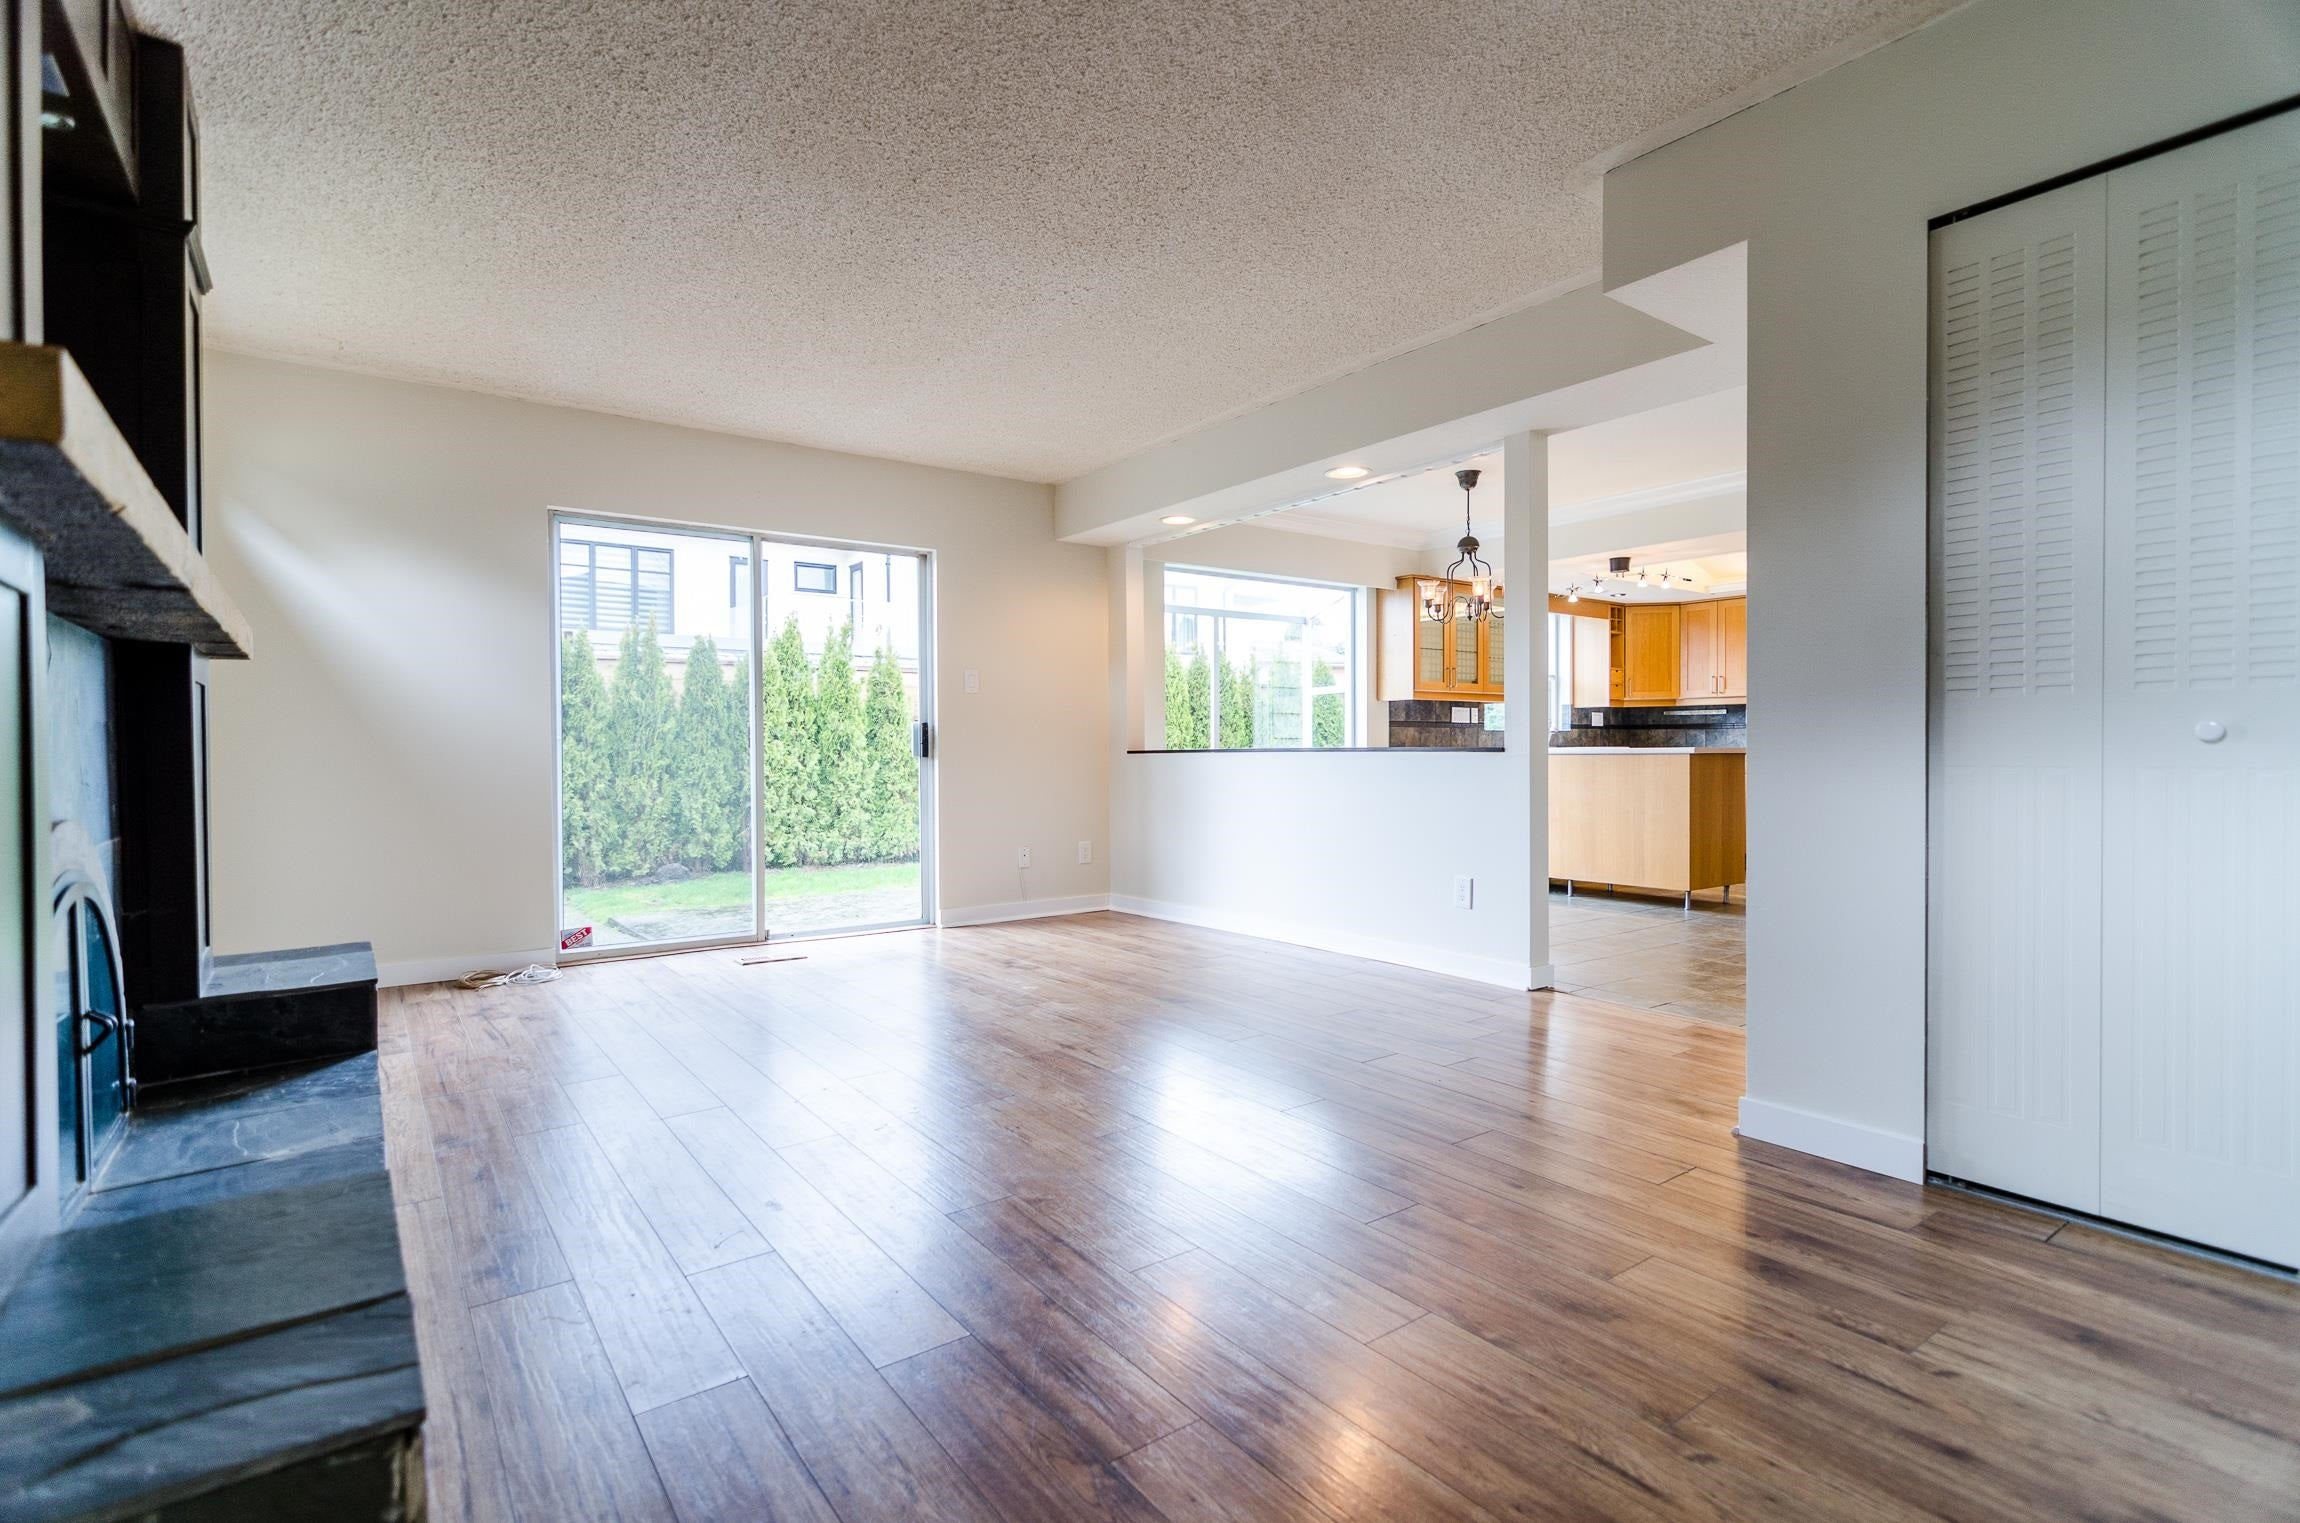 7831 MALAHAT AVENUE - Broadmoor House/Single Family for sale, 4 Bedrooms (R2625745) - #9